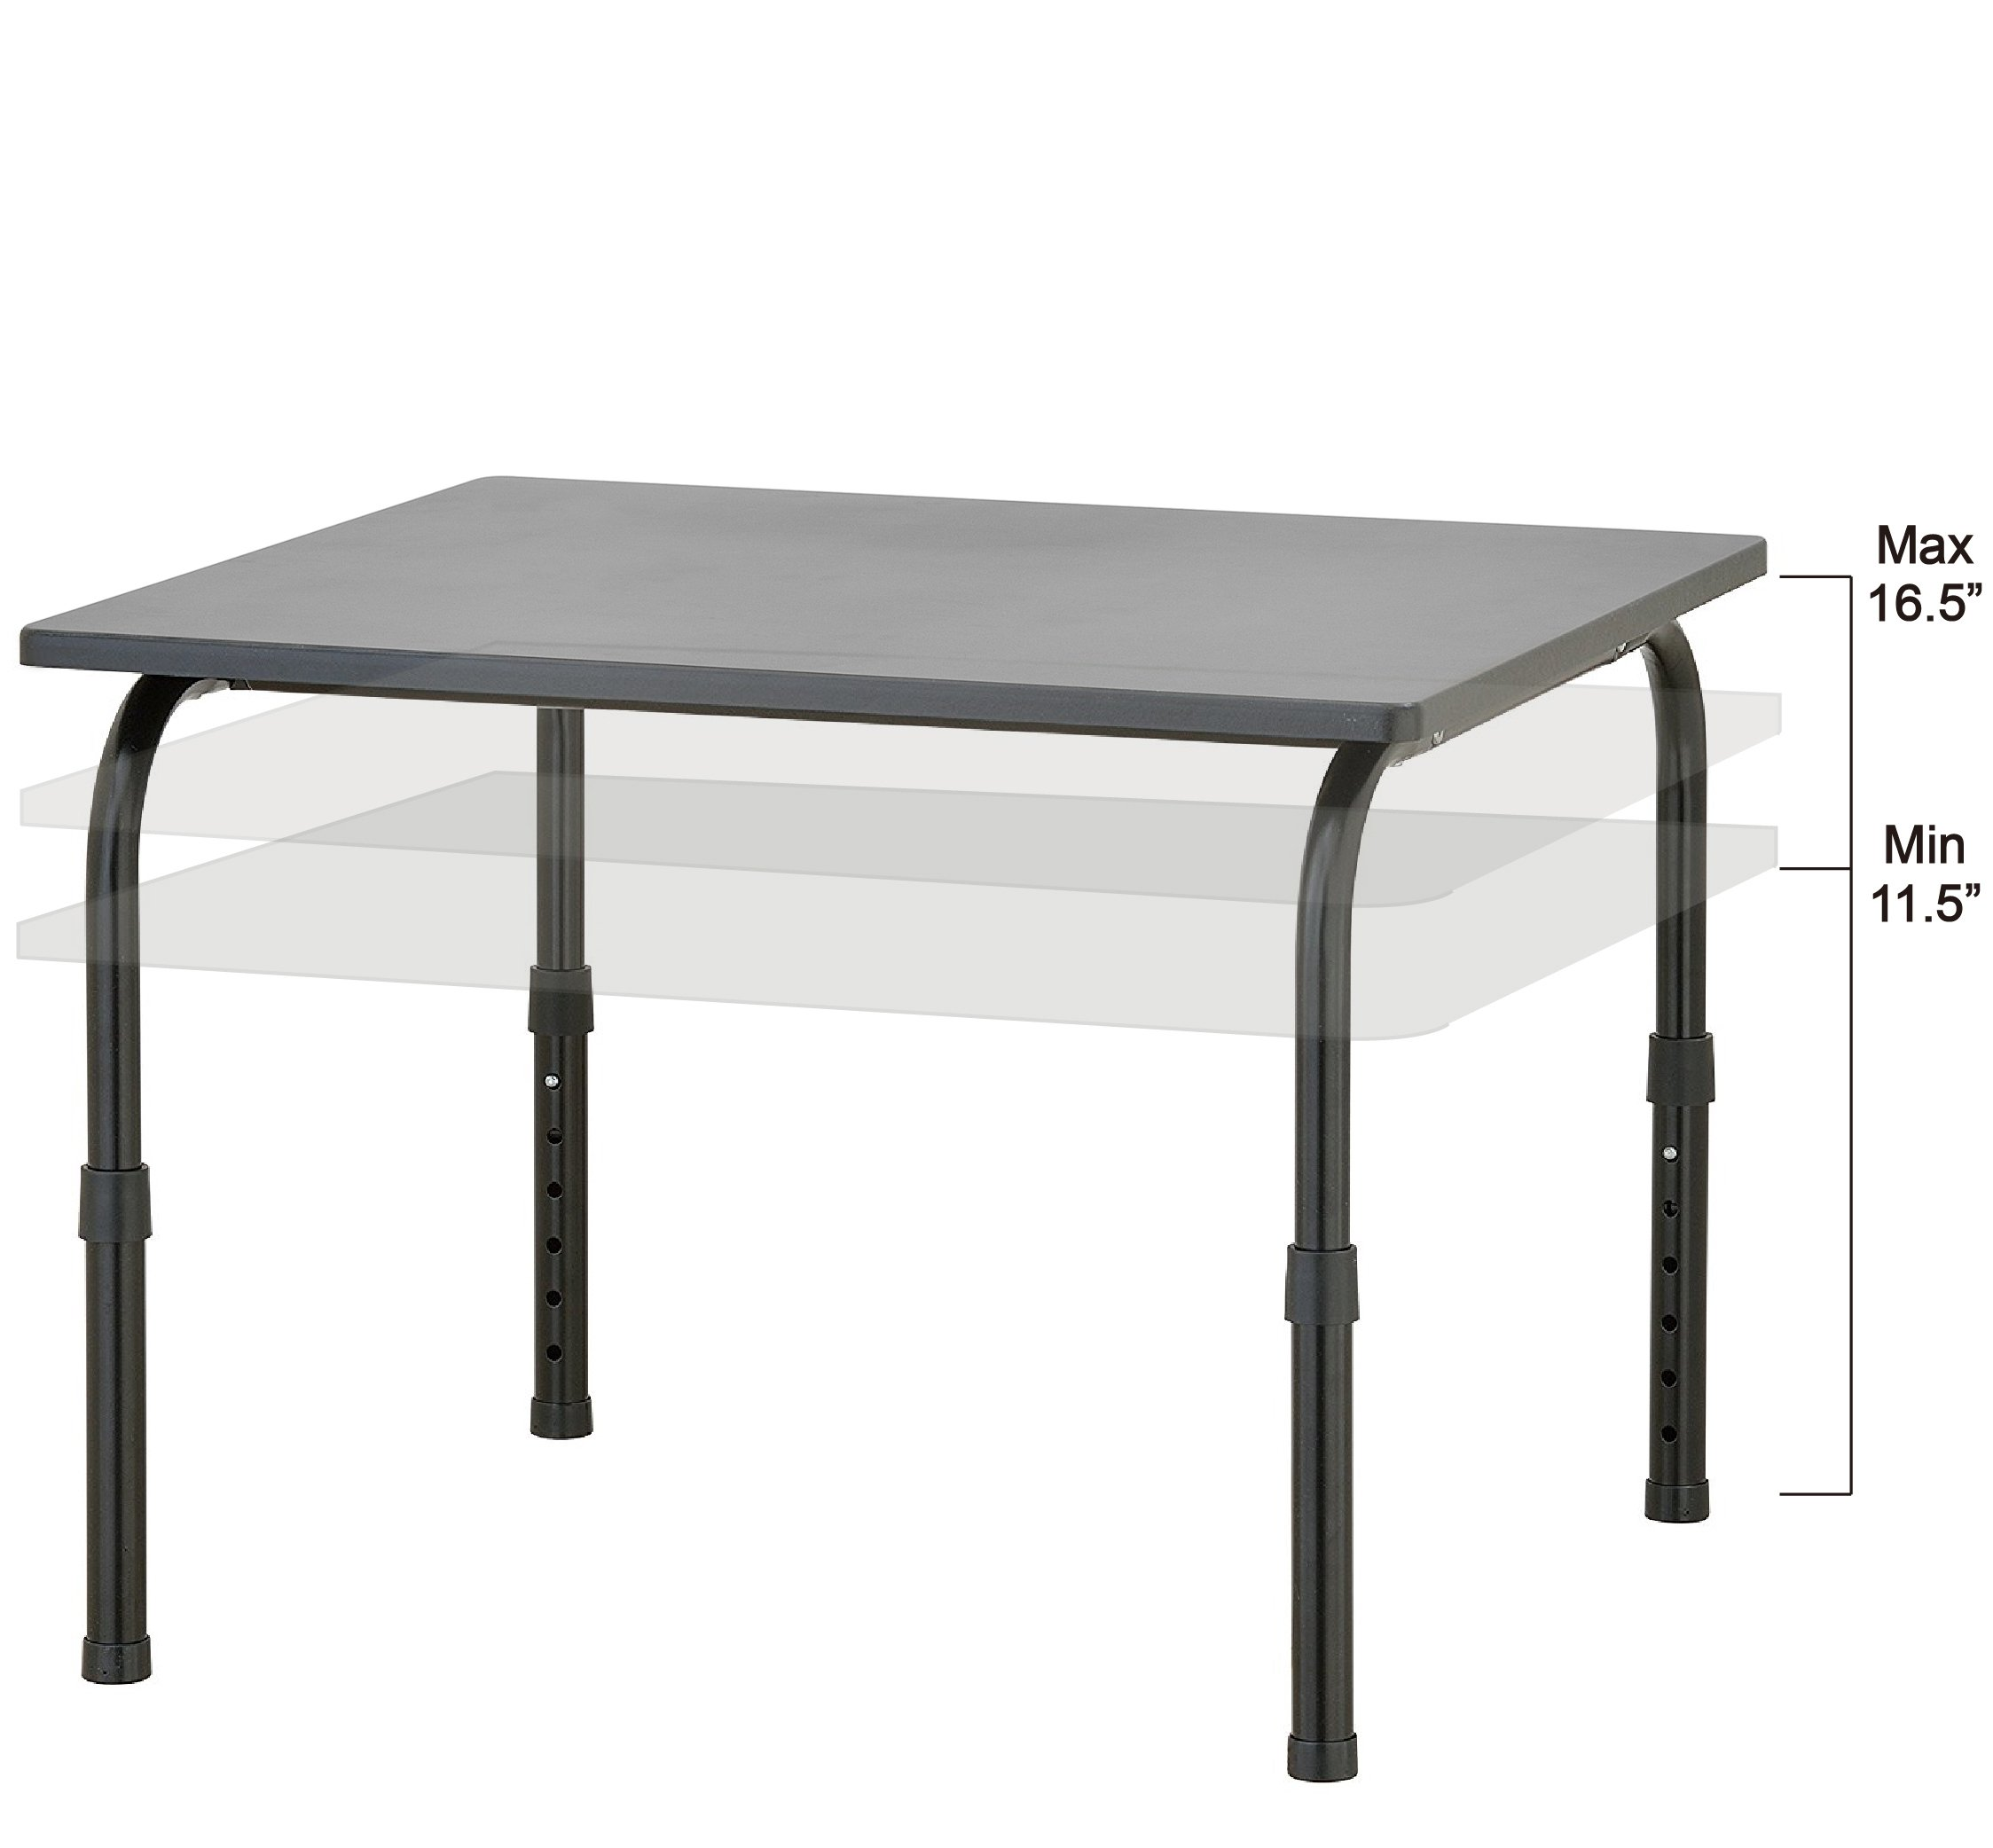 Adjustable Height Standing Black Desk Riser Workstation / Heavy Duty Laptop Table - Made in Taiwan